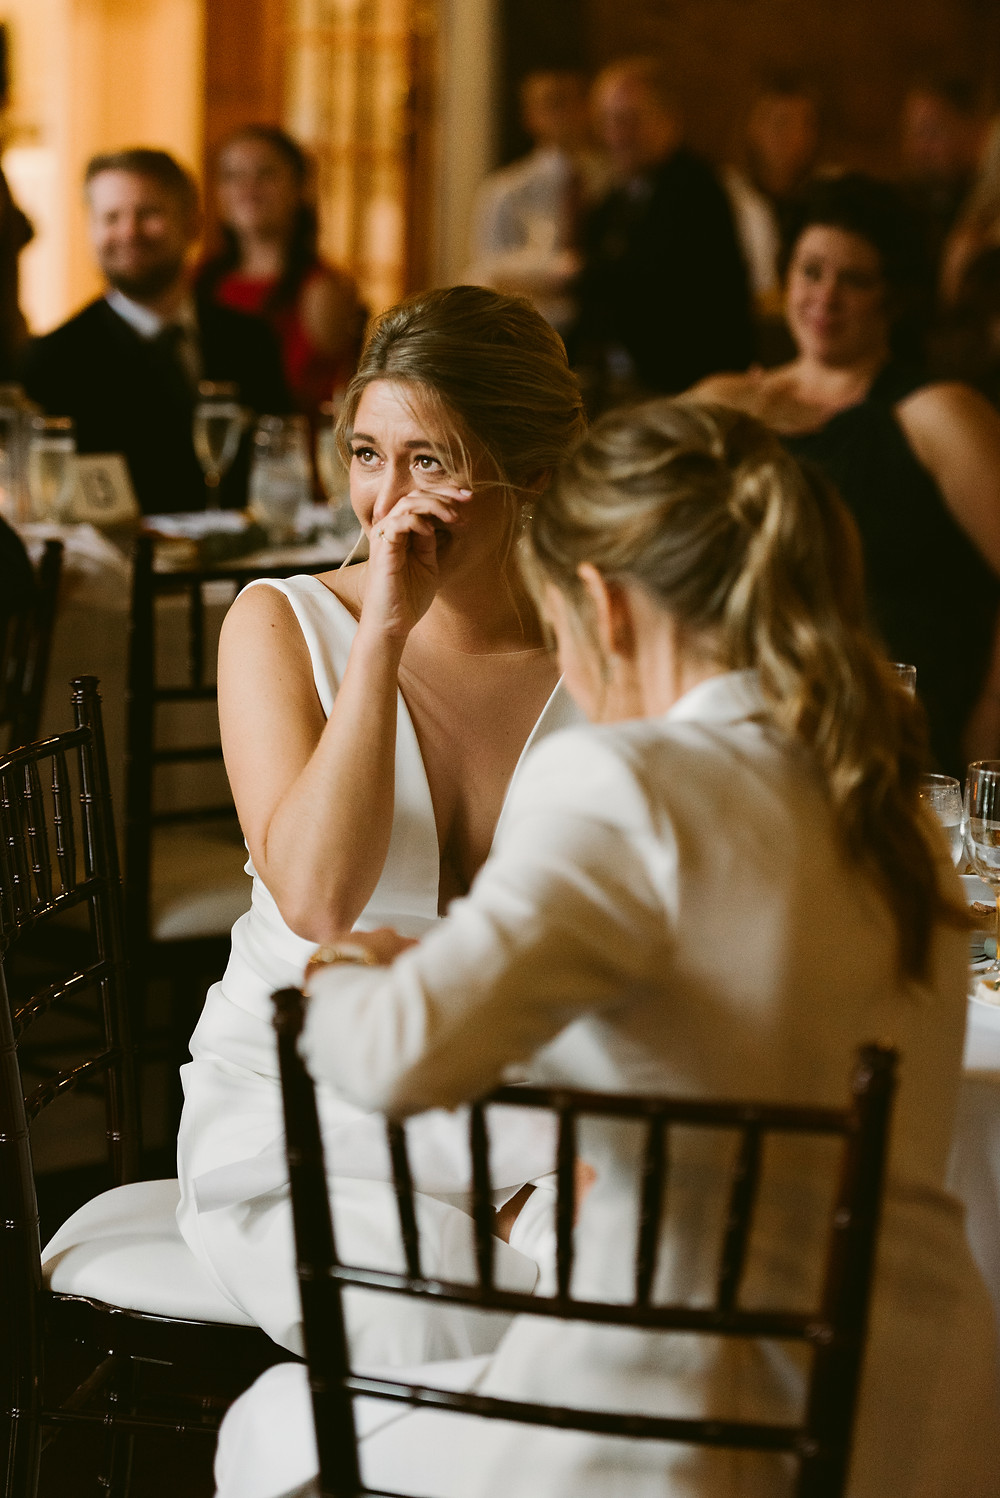 Lesbian wedding at Fontainebleau Inn in Ithaca, NY by New York wedding photographer Mountainaire Gatherings